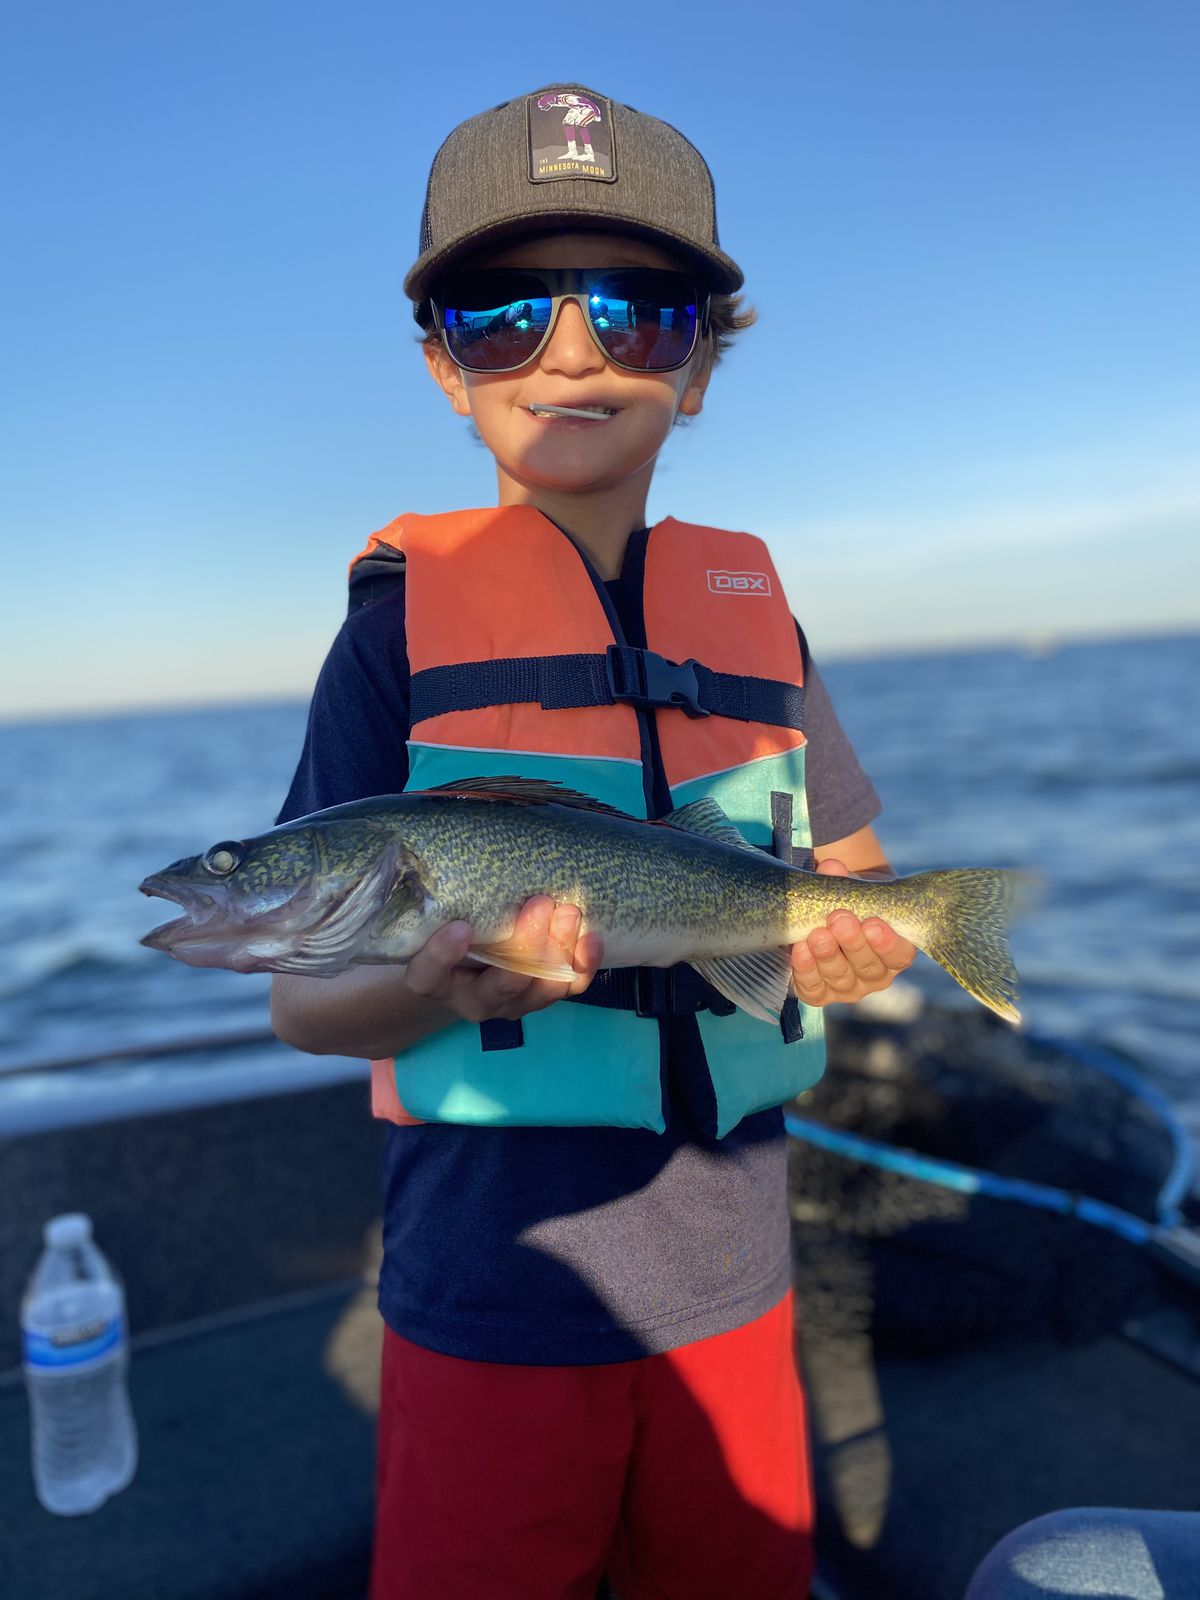 Emerson with a beautiful walleye from Mille Lacs. Provided by McQuoid's Inn